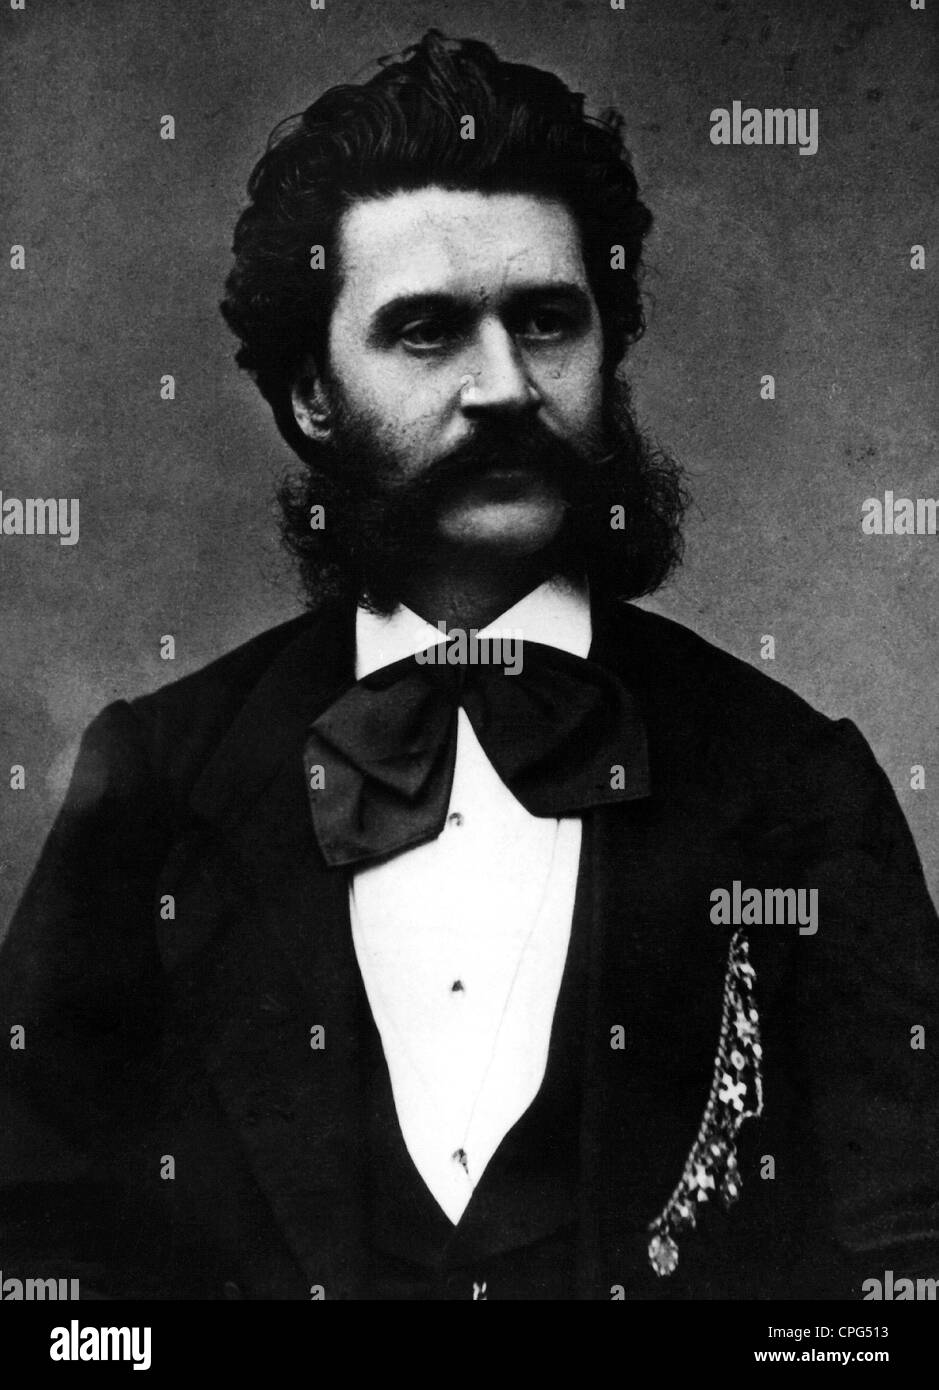 Strauss, Johann II (the Younger), 25.10.1825 - 3.6.1899, Austrian composer, portrait, Additional-Rights-Clearances Stock Photo